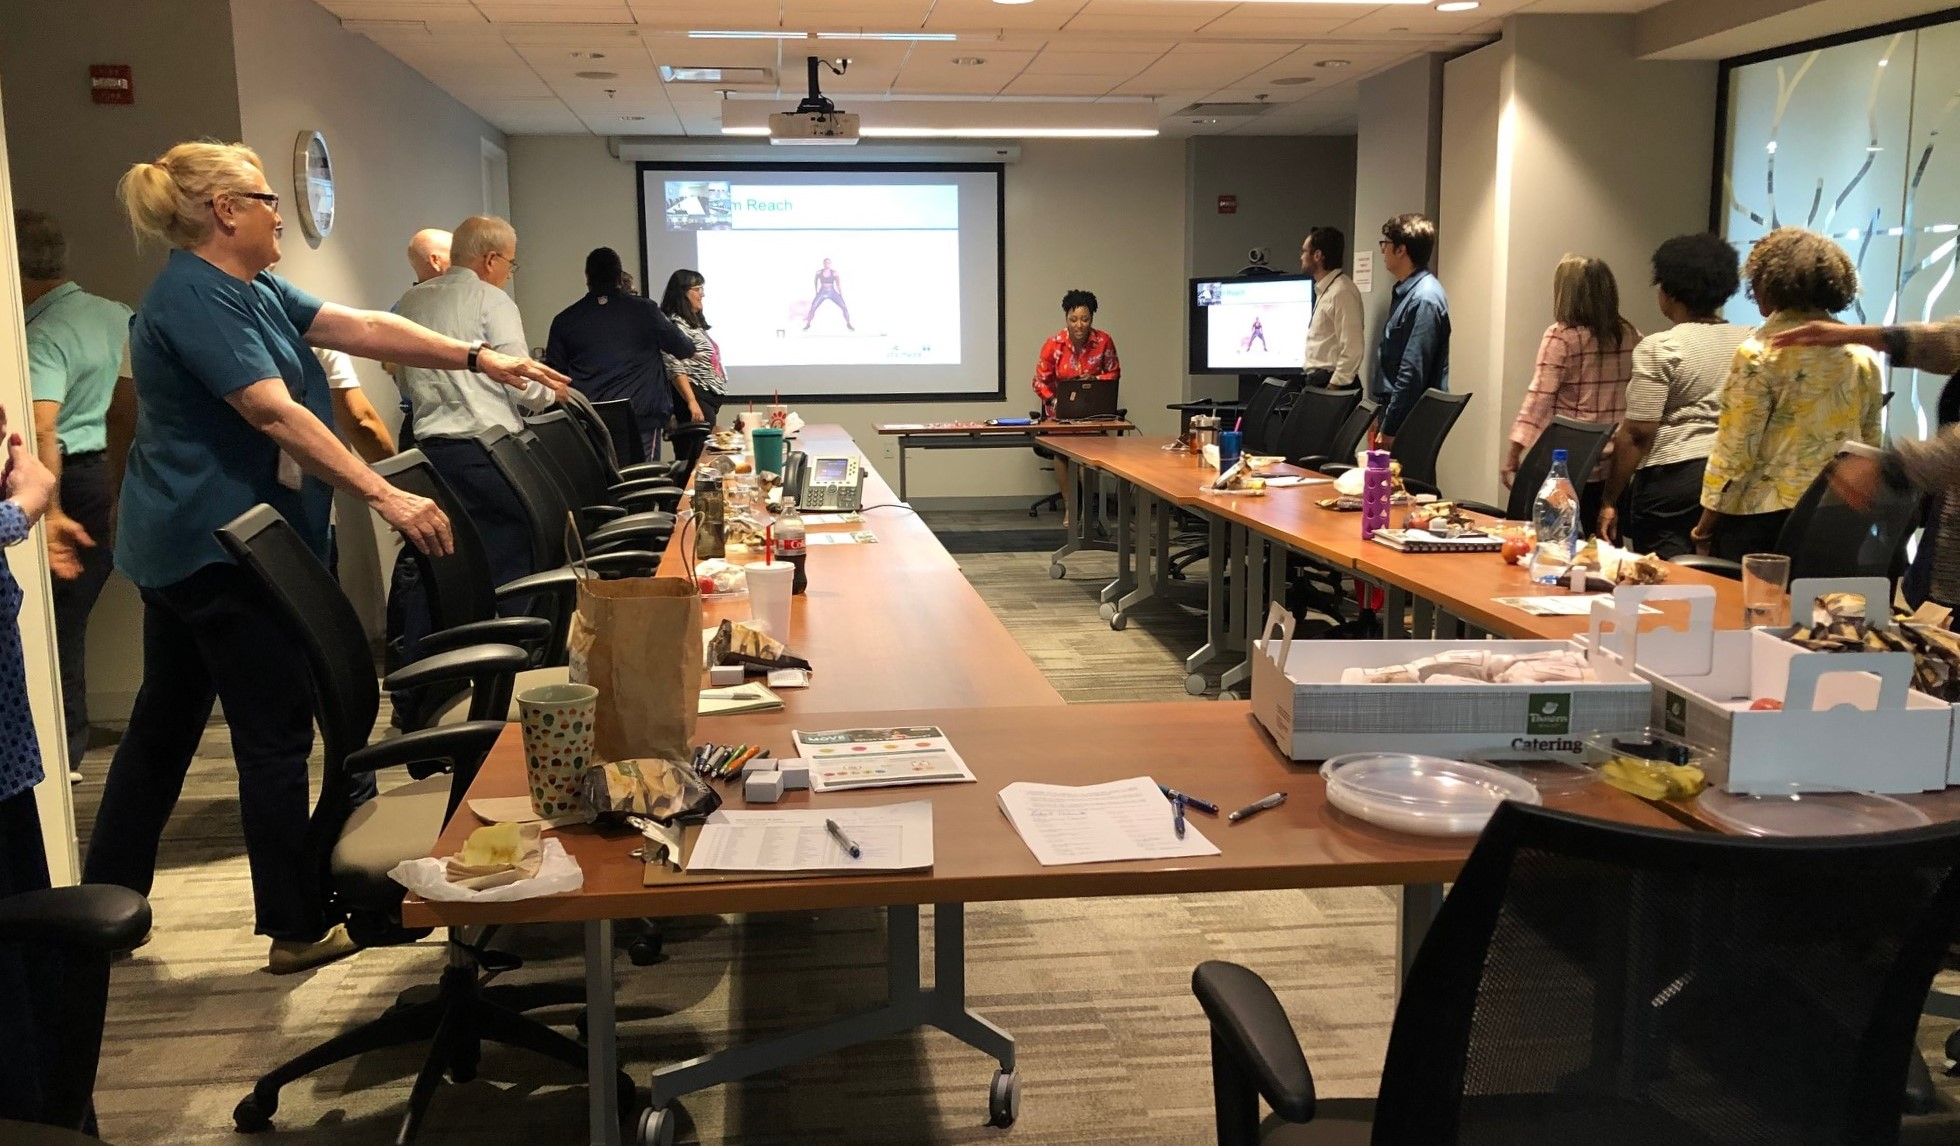 TDEC recently hosted the Avoiding Injuries During Exercise Lunch 'n Learn at the TN Tower. Employees from two different field offices participated via teleconference. Regional Wellness Coordinator Allison Nance facilitated.